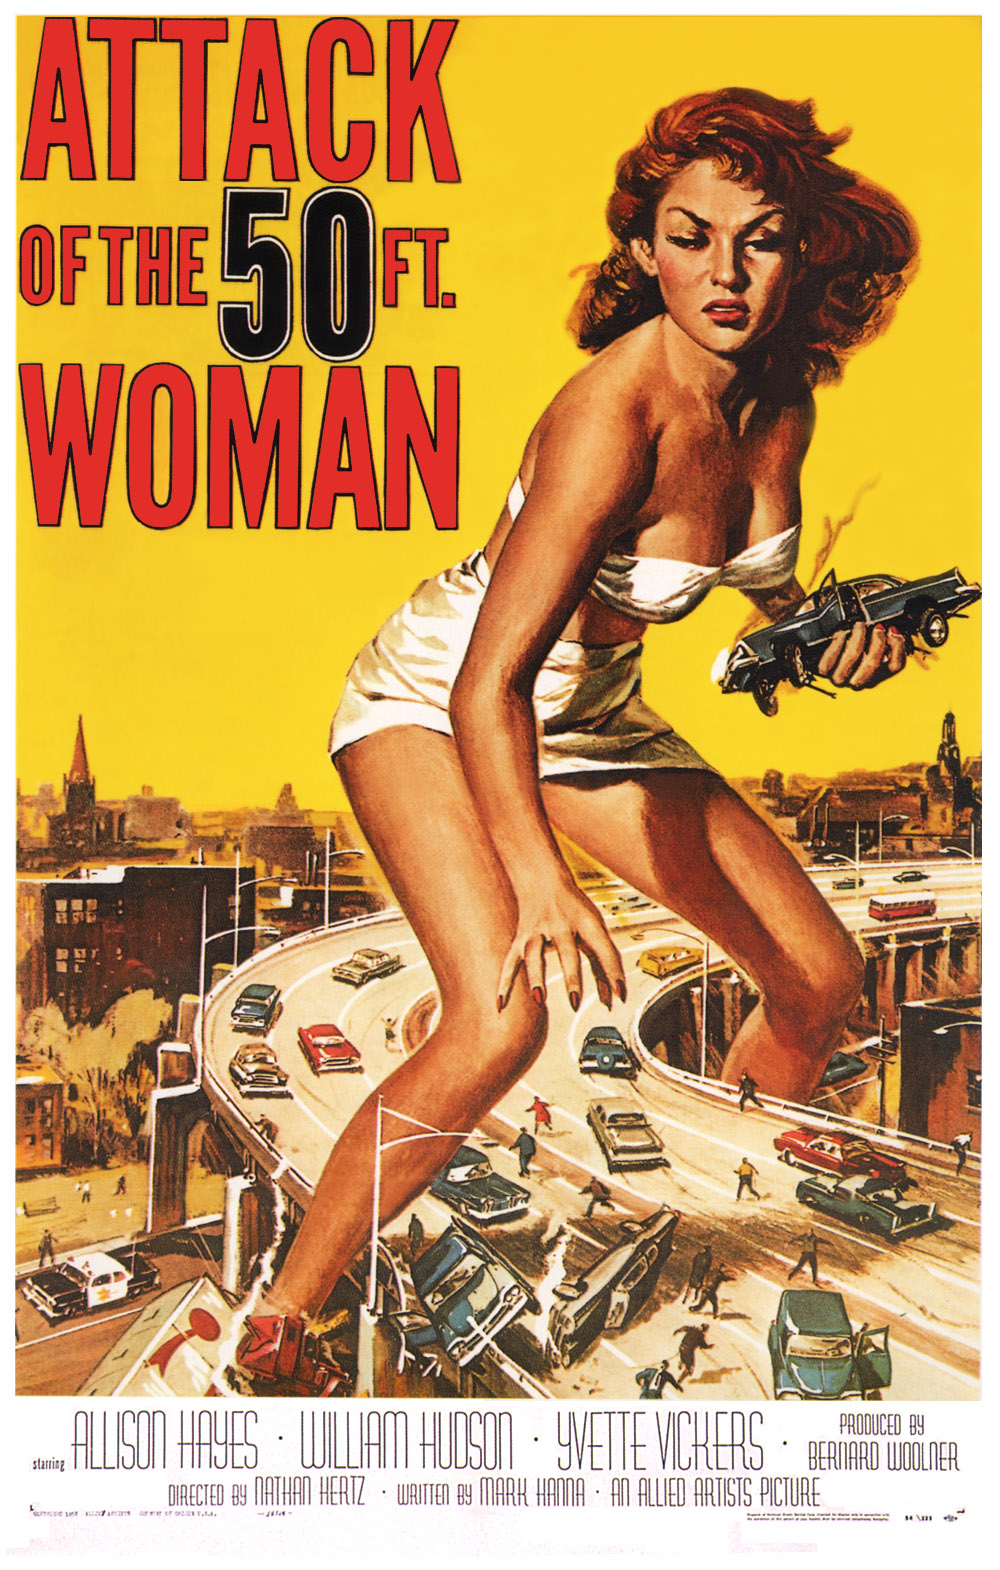 Featured Image: Attack of the 50 Foot Woman, Original poster by Reynold Brown